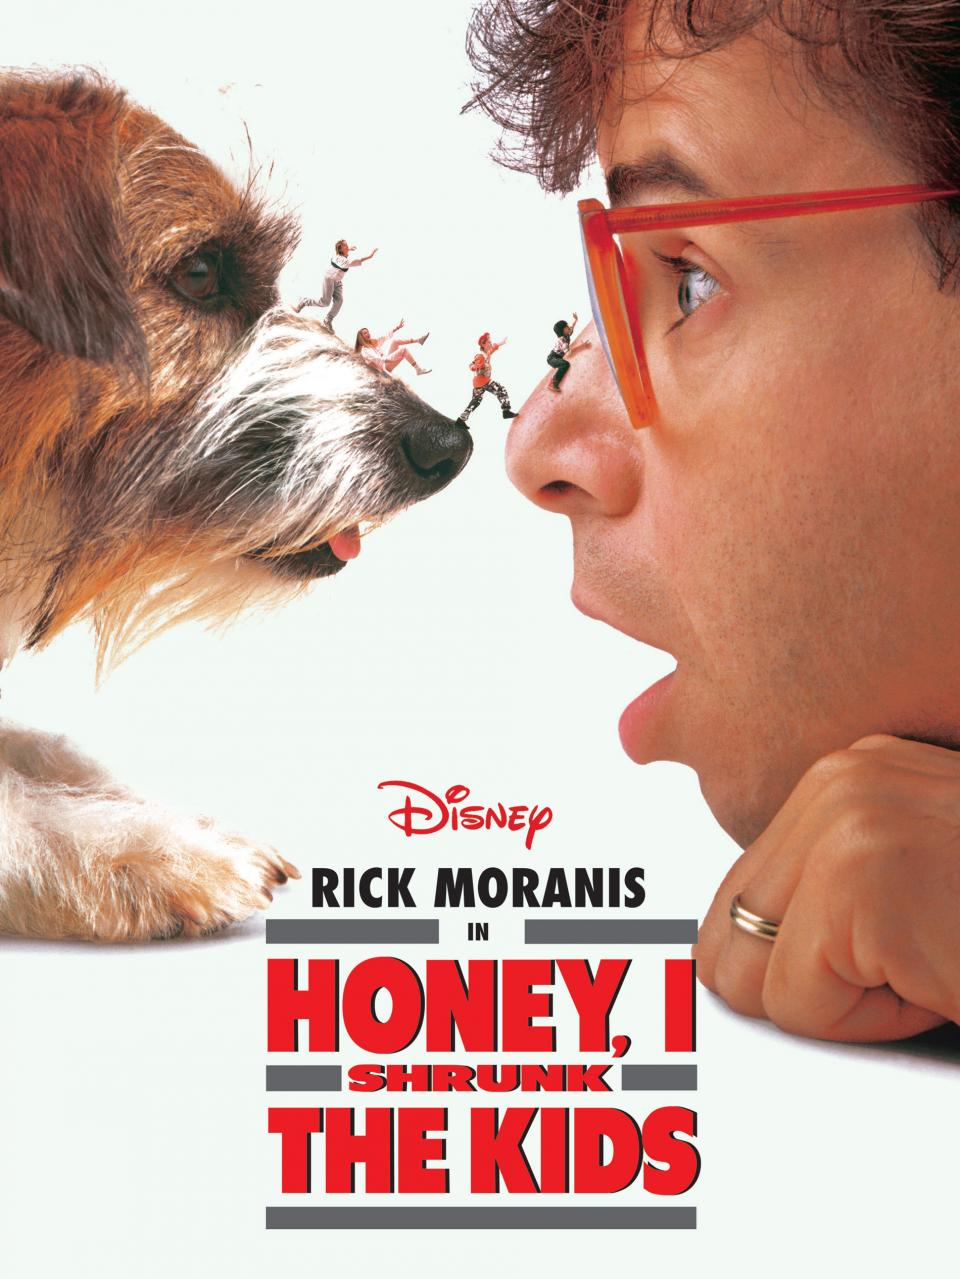 Coming up next at 4.50pm, a family treat from 1989: sci-fi comedy Honey, I Shrunk The Kids, starring Rick Moranis. http://t.co/HliSCHv5iL